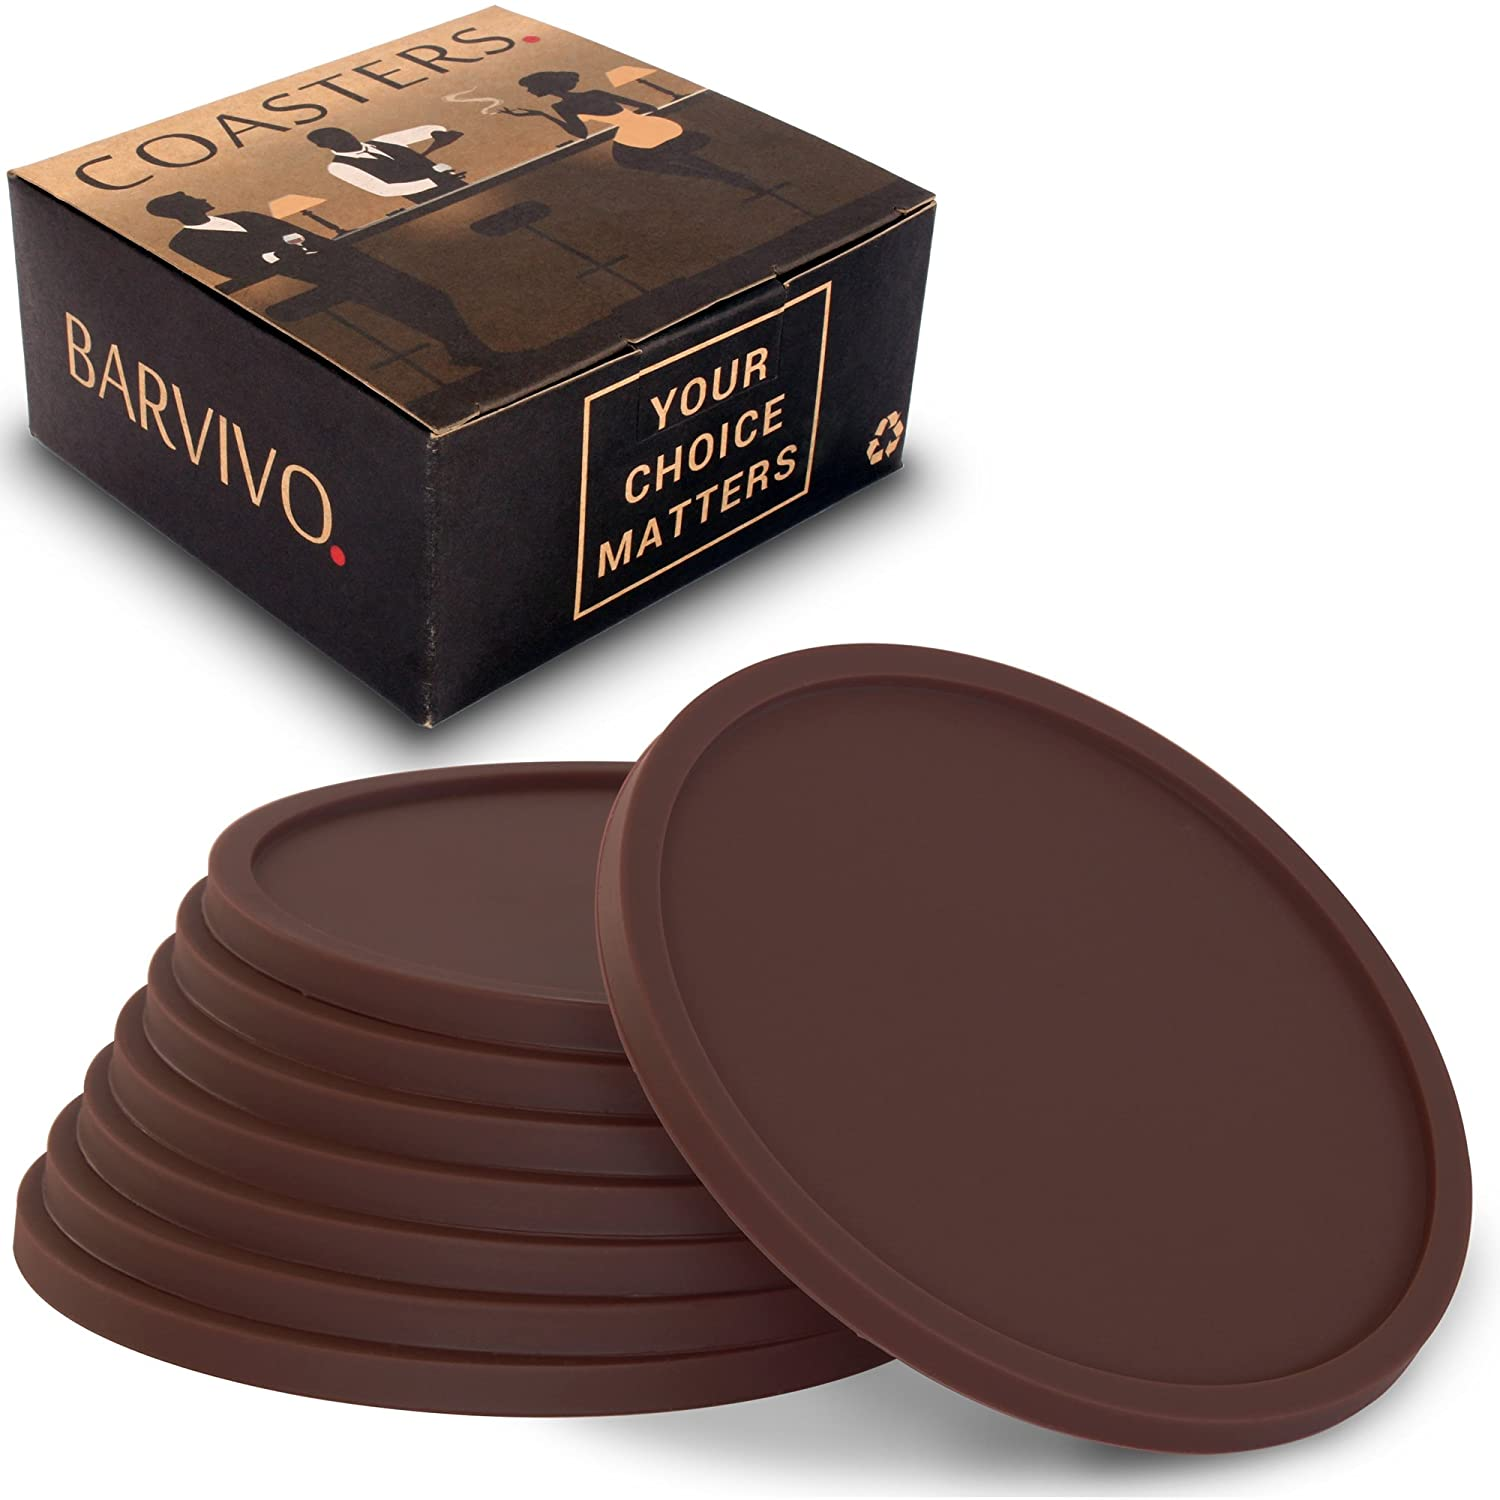 Barvivo Drink Coasters Set of 8 - Tabletop Protection for Any Table Type, Wood, Granite, Glass, Soapstone, Sandstone, Marble, Stone Tables - Perfect Soft Coaster Fits Any Size of Drinking Glasses. 43178102276